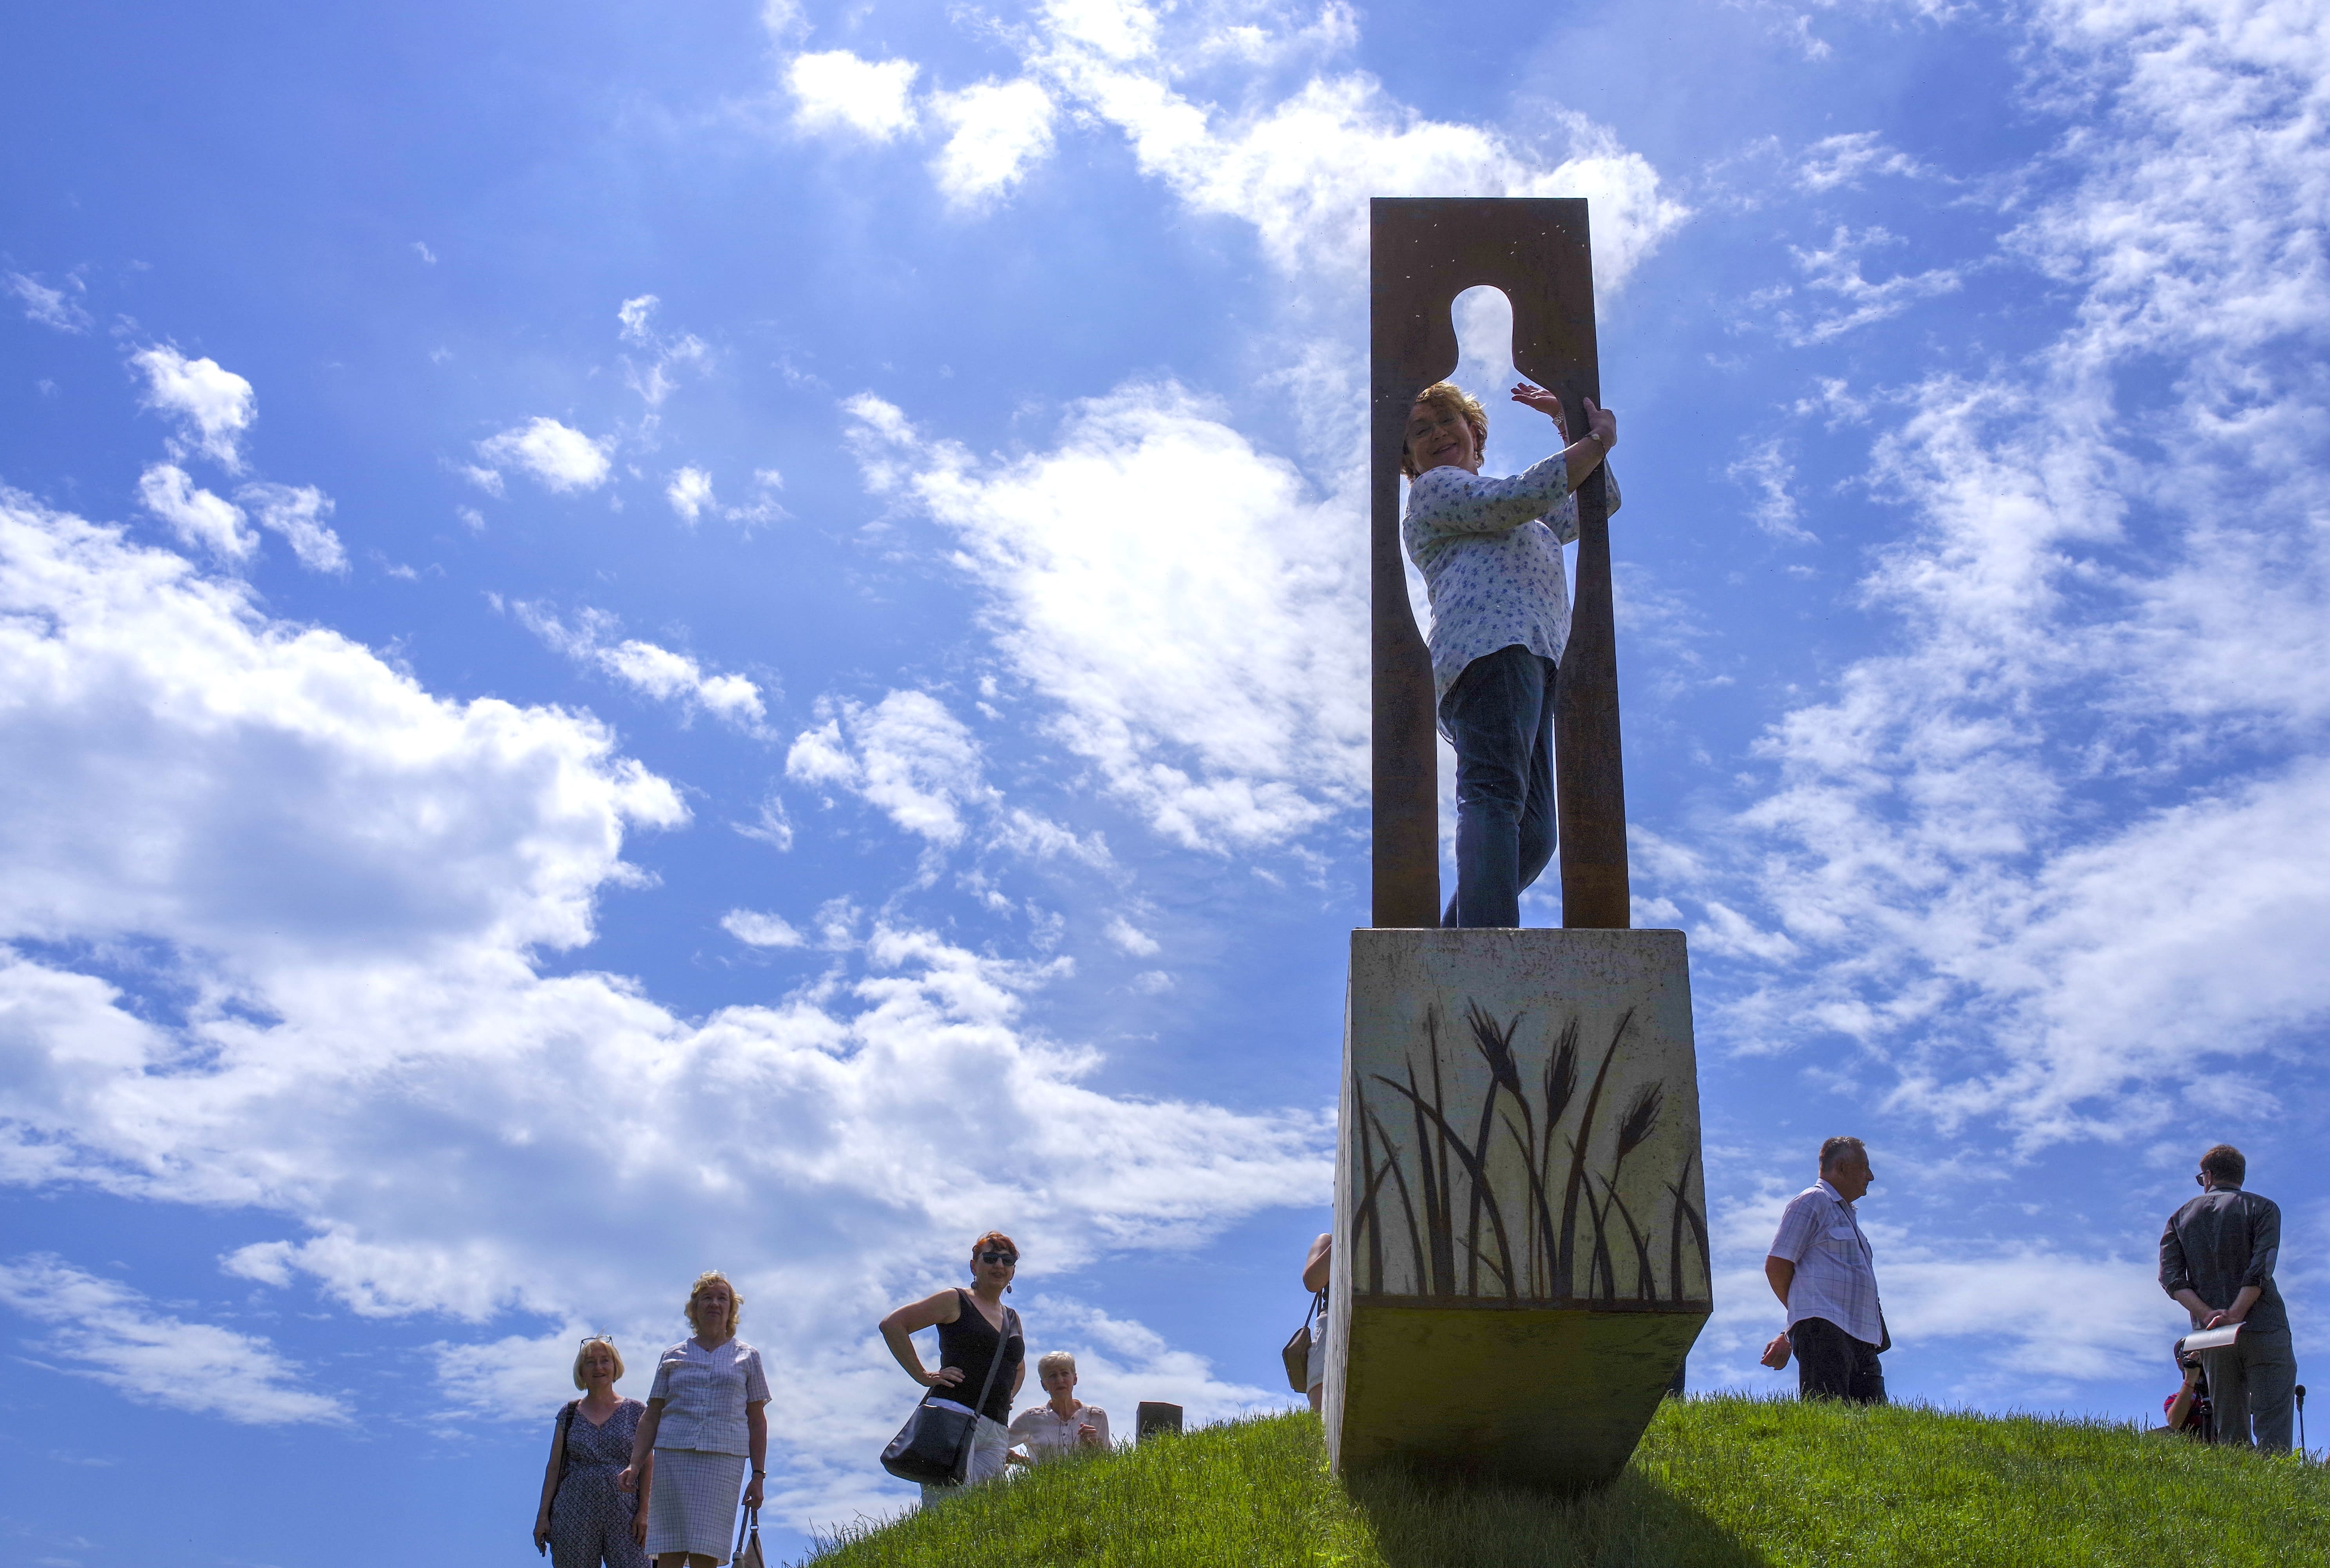 """People look at the new statue of American writer Jerome David Salinger in Paminklas, Lithuania, Friday, June 19, 2020. J.D. Salinger, the American writer best known for his 1951 novel """"The Catcher in the Rye,"""" has been honored with a statue in a rye field, near the Lithuanian village where his ancestors lived. (AP Photo/Vladas Sciavinskas)"""